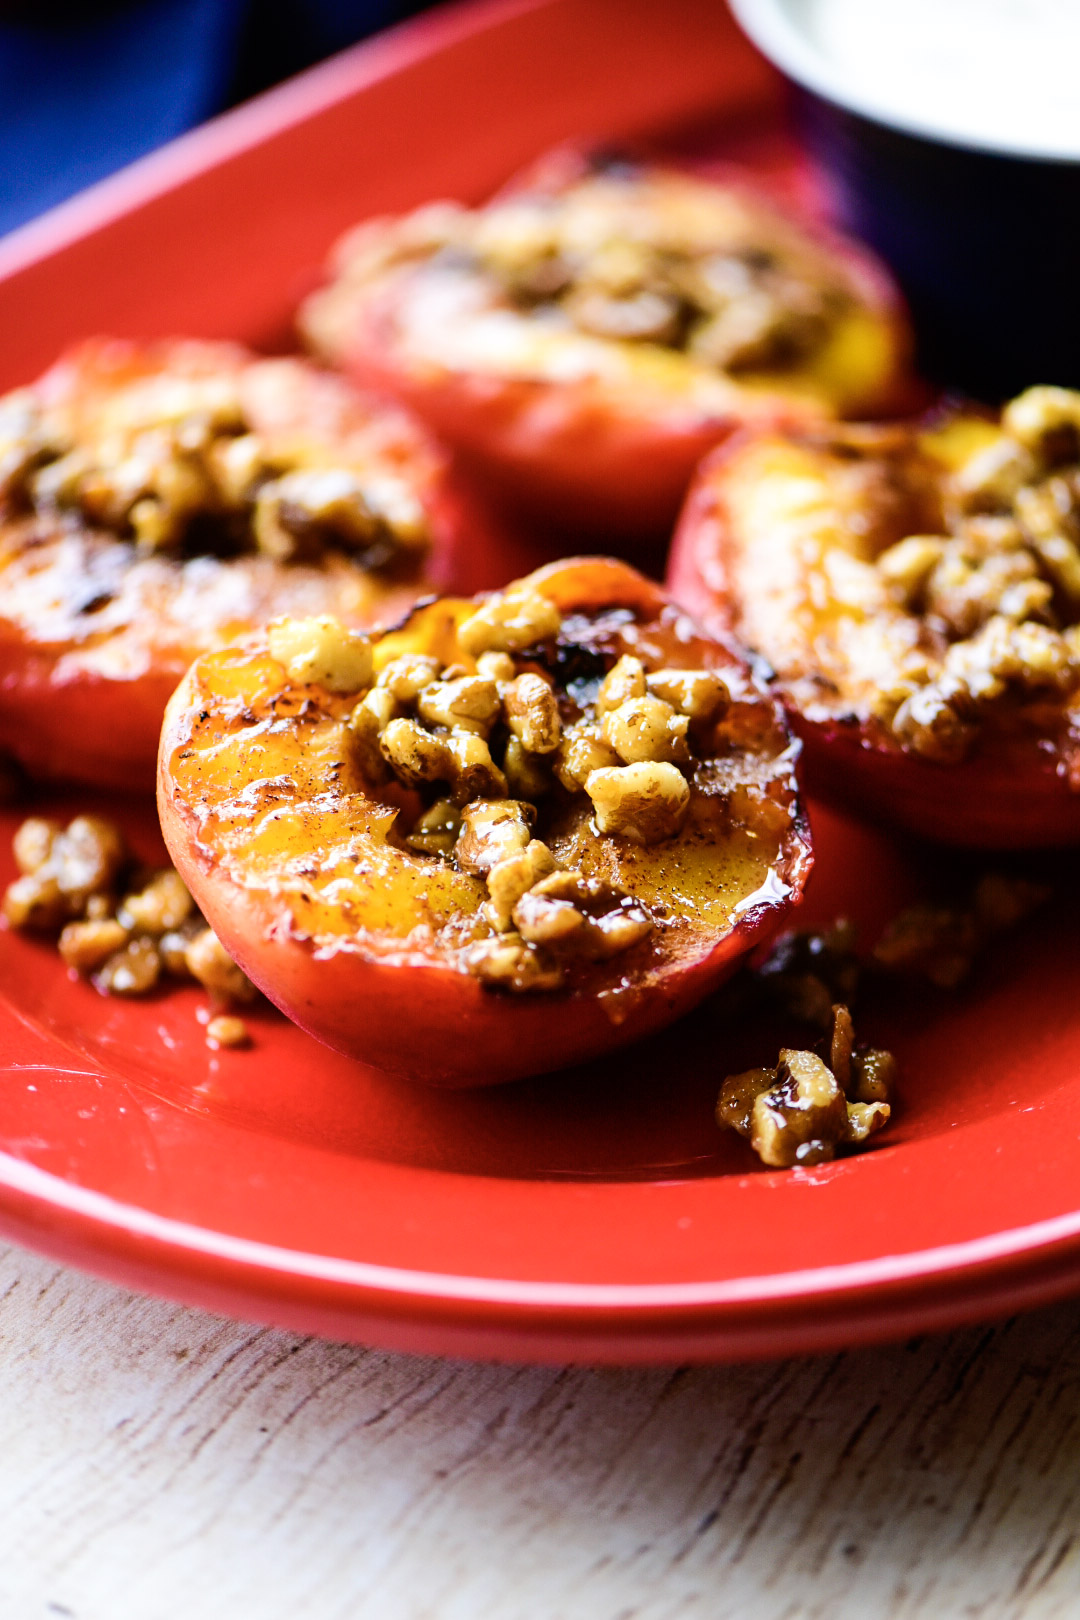 grilled peaches with candied walnuts